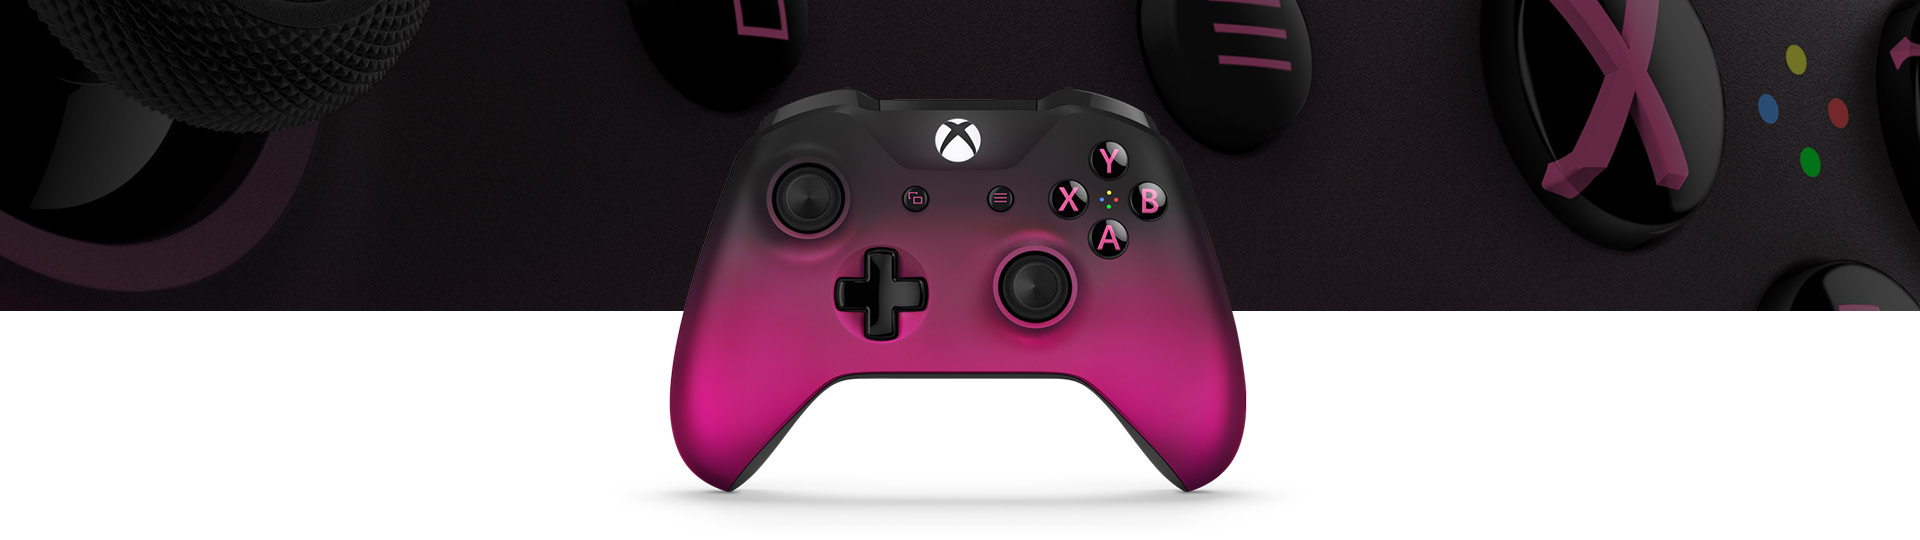 Dawn Shadow Draadloze Controller